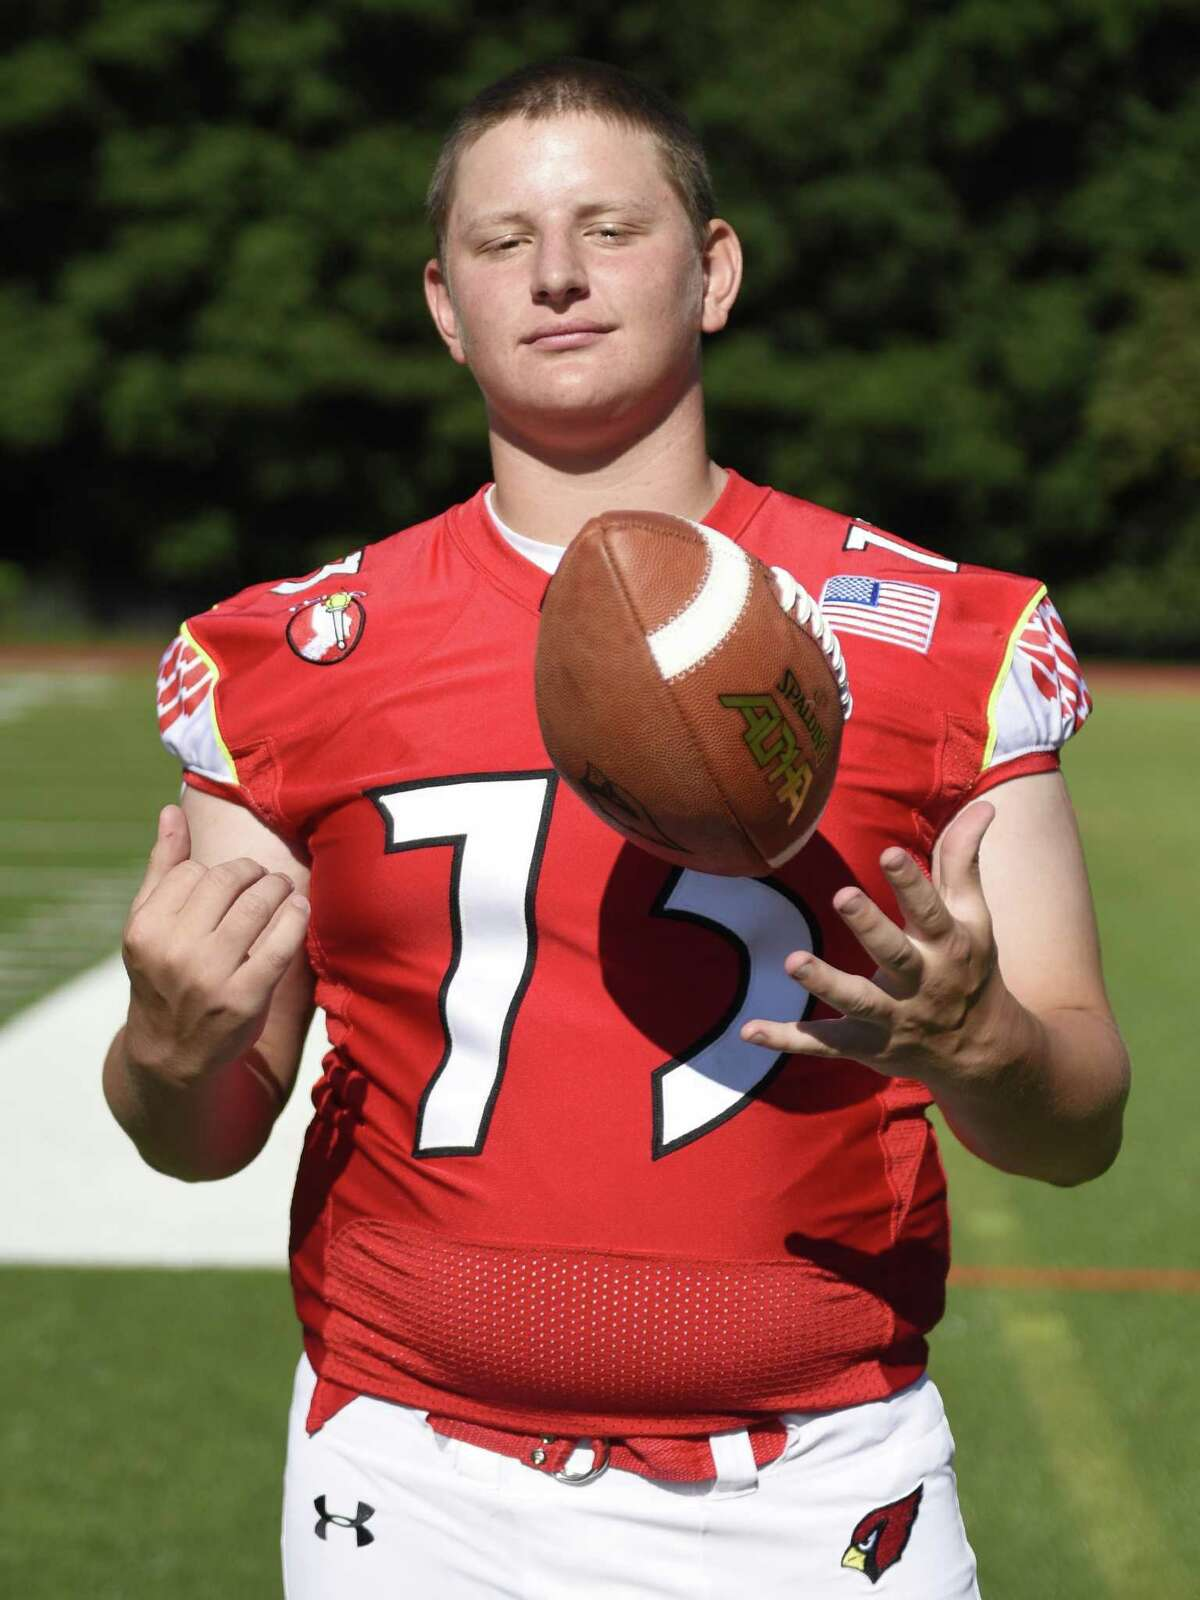 Senior team captain offensive lineman Kyle Woodring (73) poses on 2017 Greenwich High School football media day at Greenwich High School's Cardinal Stadium in Greenwich, Conn. Sunday, Aug. 20, 2017.